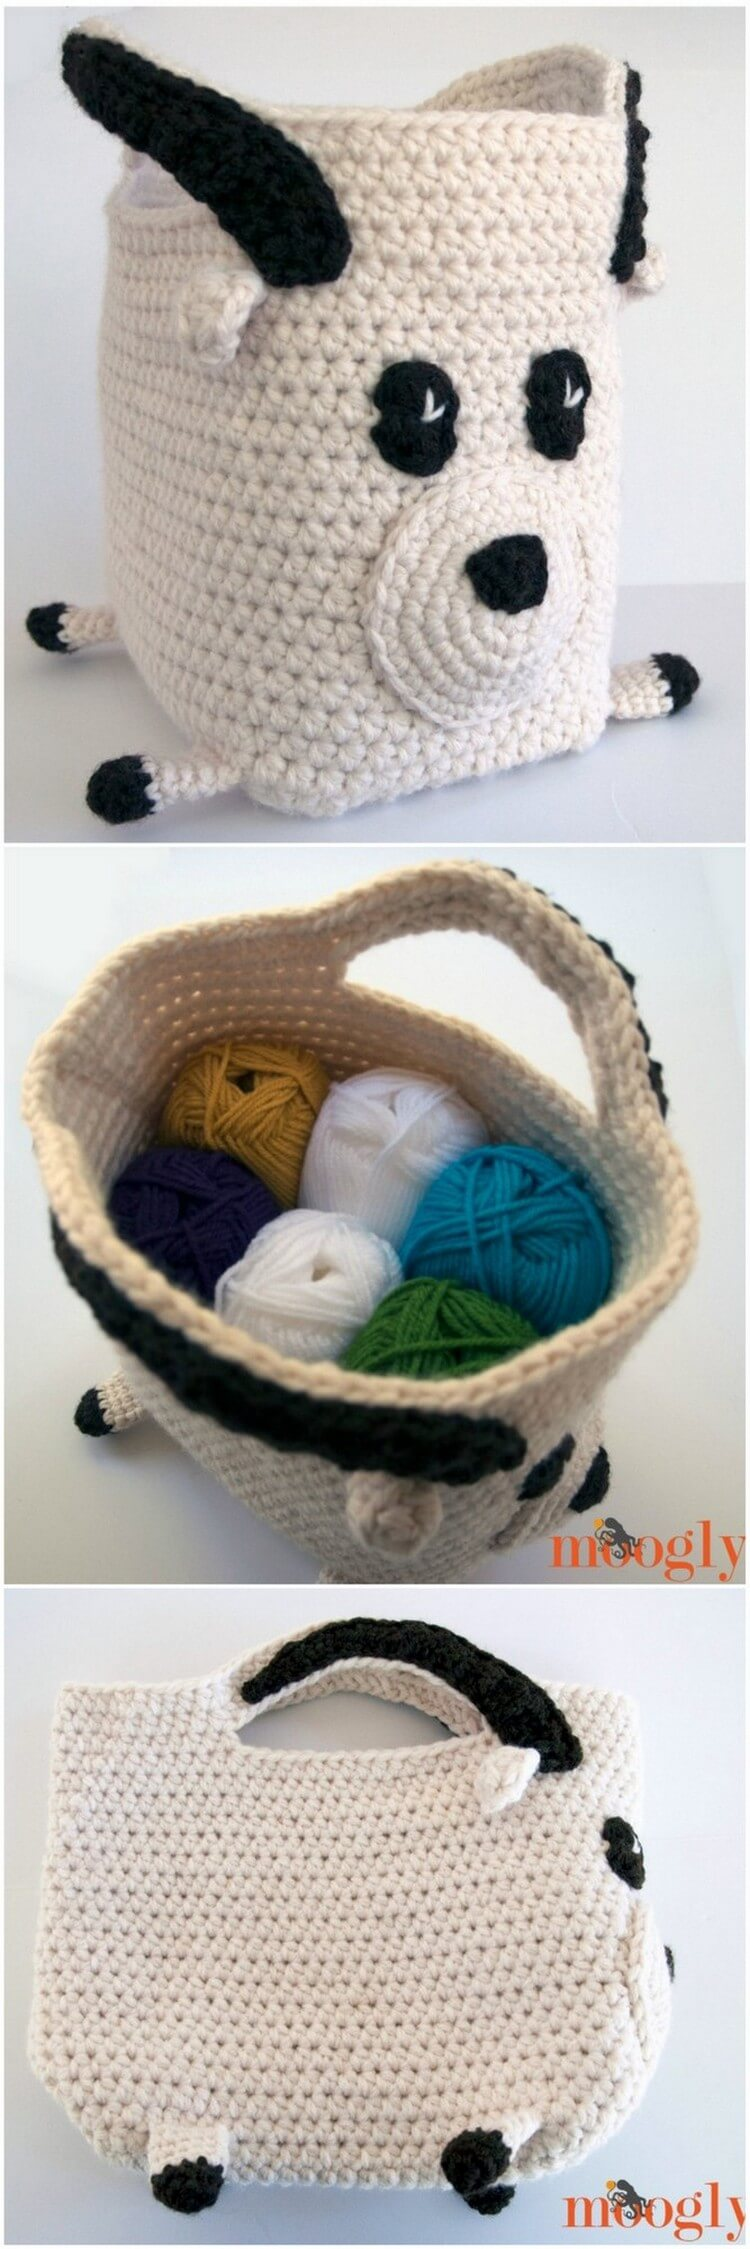 Crochet Basket Pattern (59)